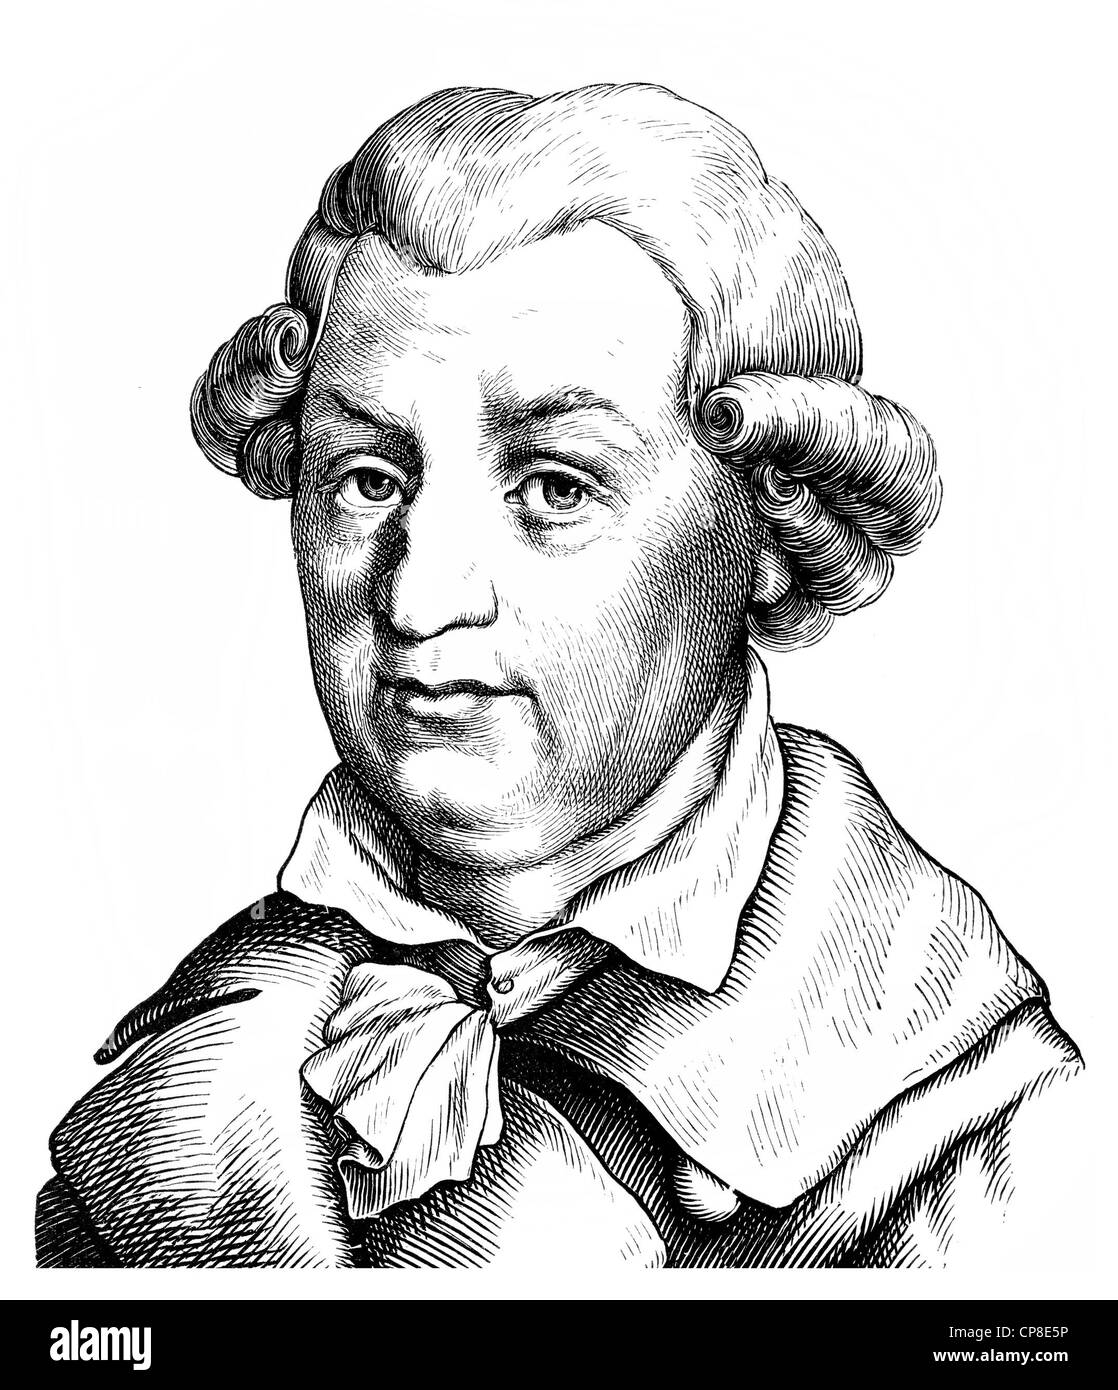 Johann Karl August Musaeus, 1735 - 1787, a German writer, literary critic, scholar and collector of fairy tales - Stock Image